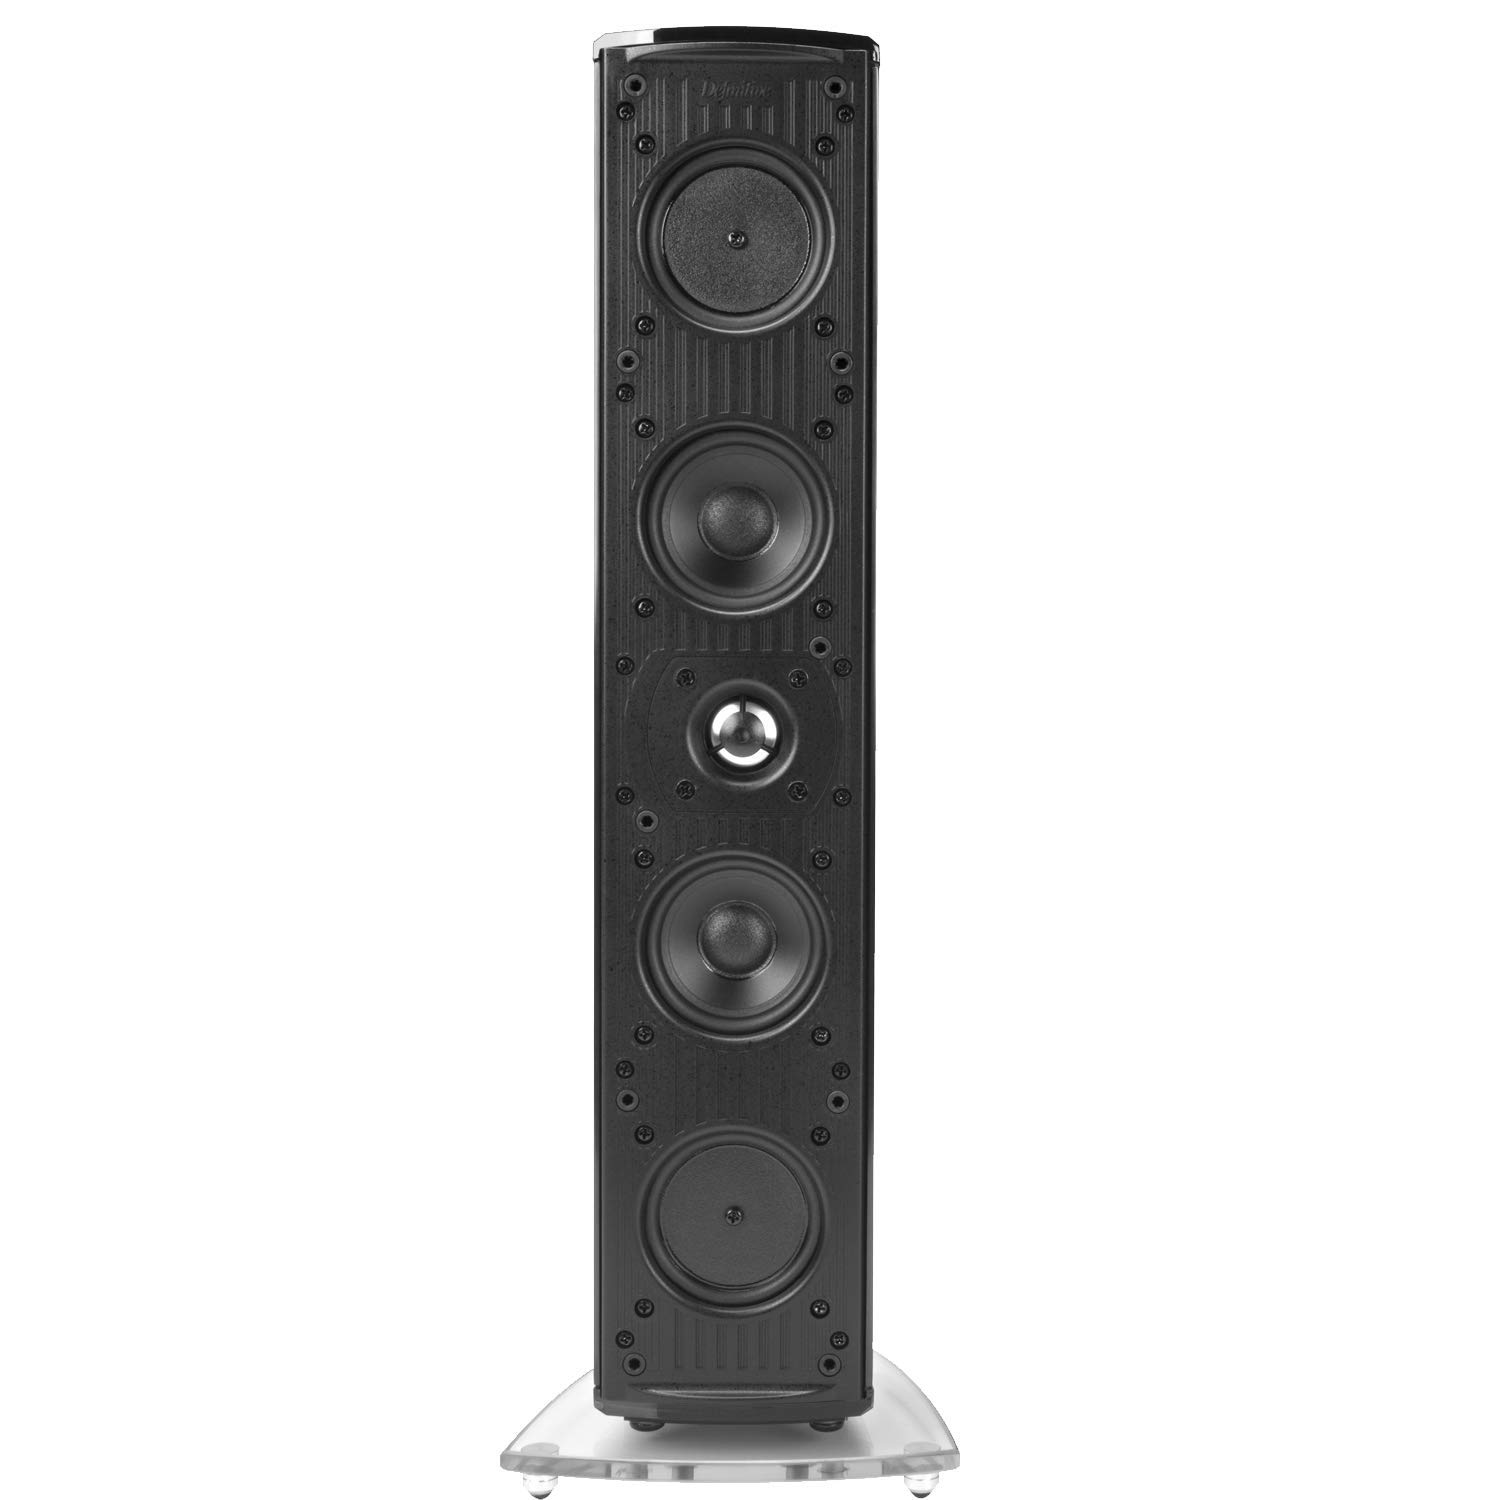 OSD Audio LP-006-00012TSM8 Dual Source 8-Zone Heavy Duty Speaker Selector 300W with Amplifier Protection - by Definitive Technology